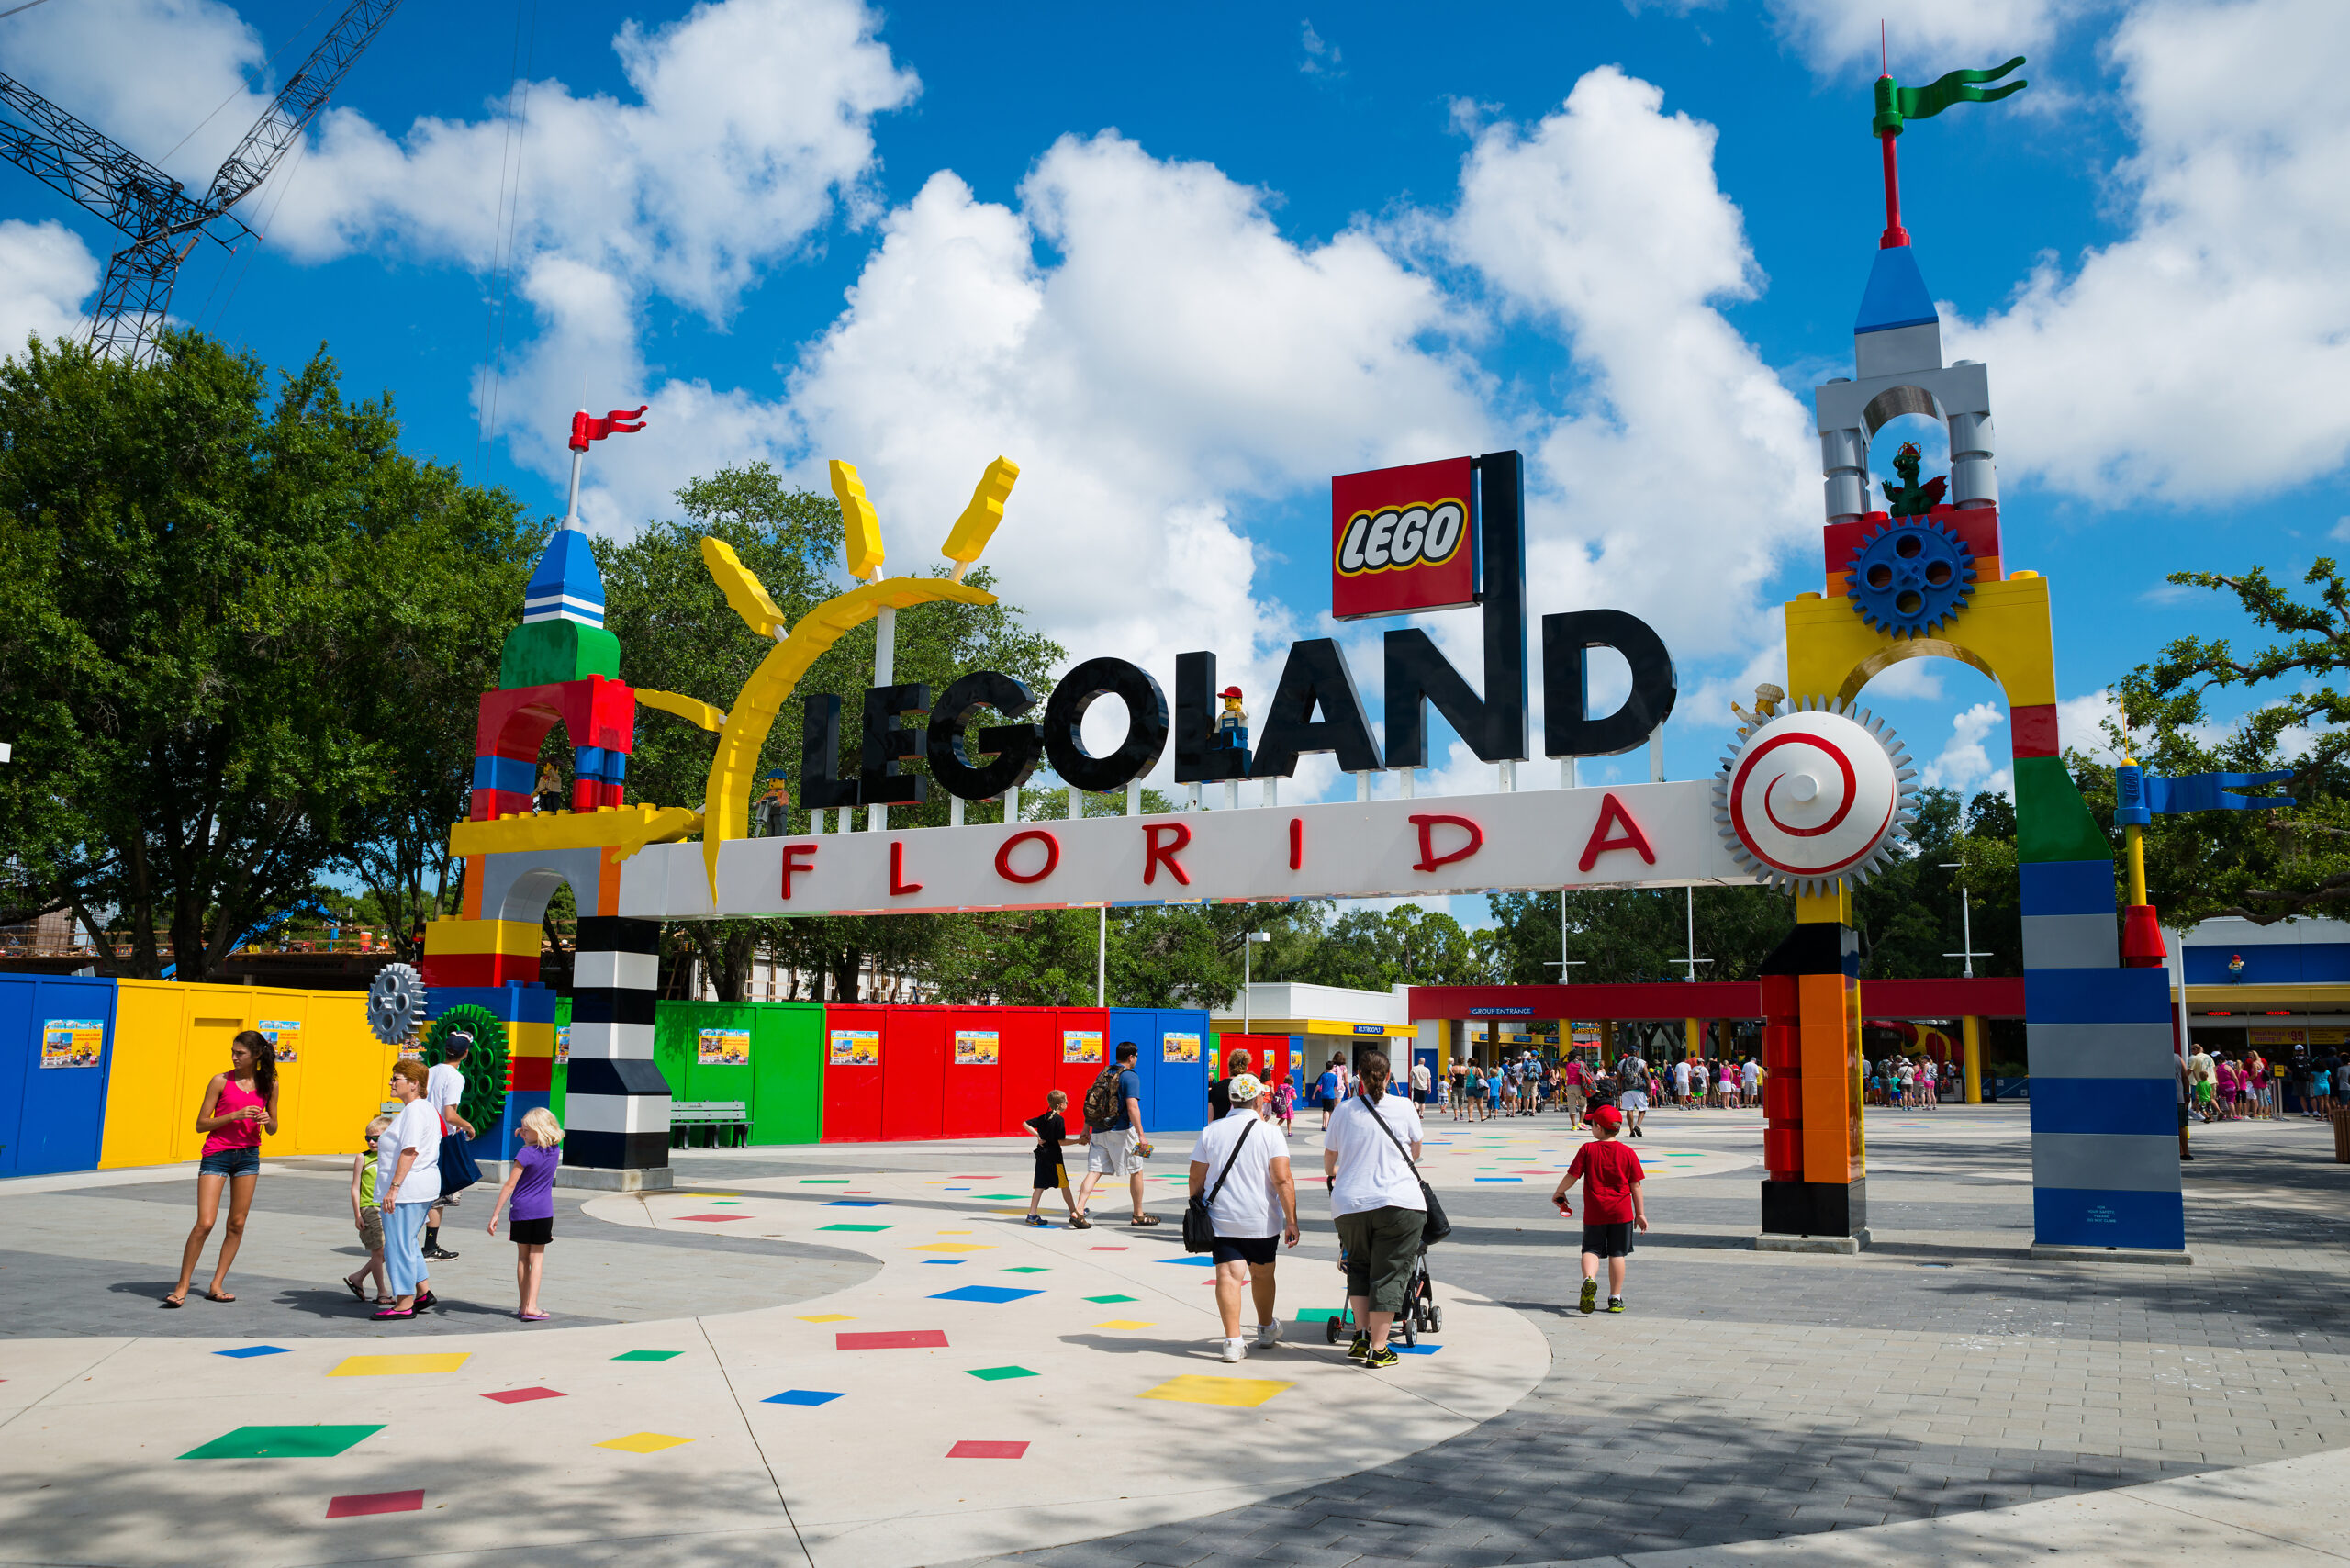 Visitors pass through the entrance to Legoland Florida in Winter Haven, FL.